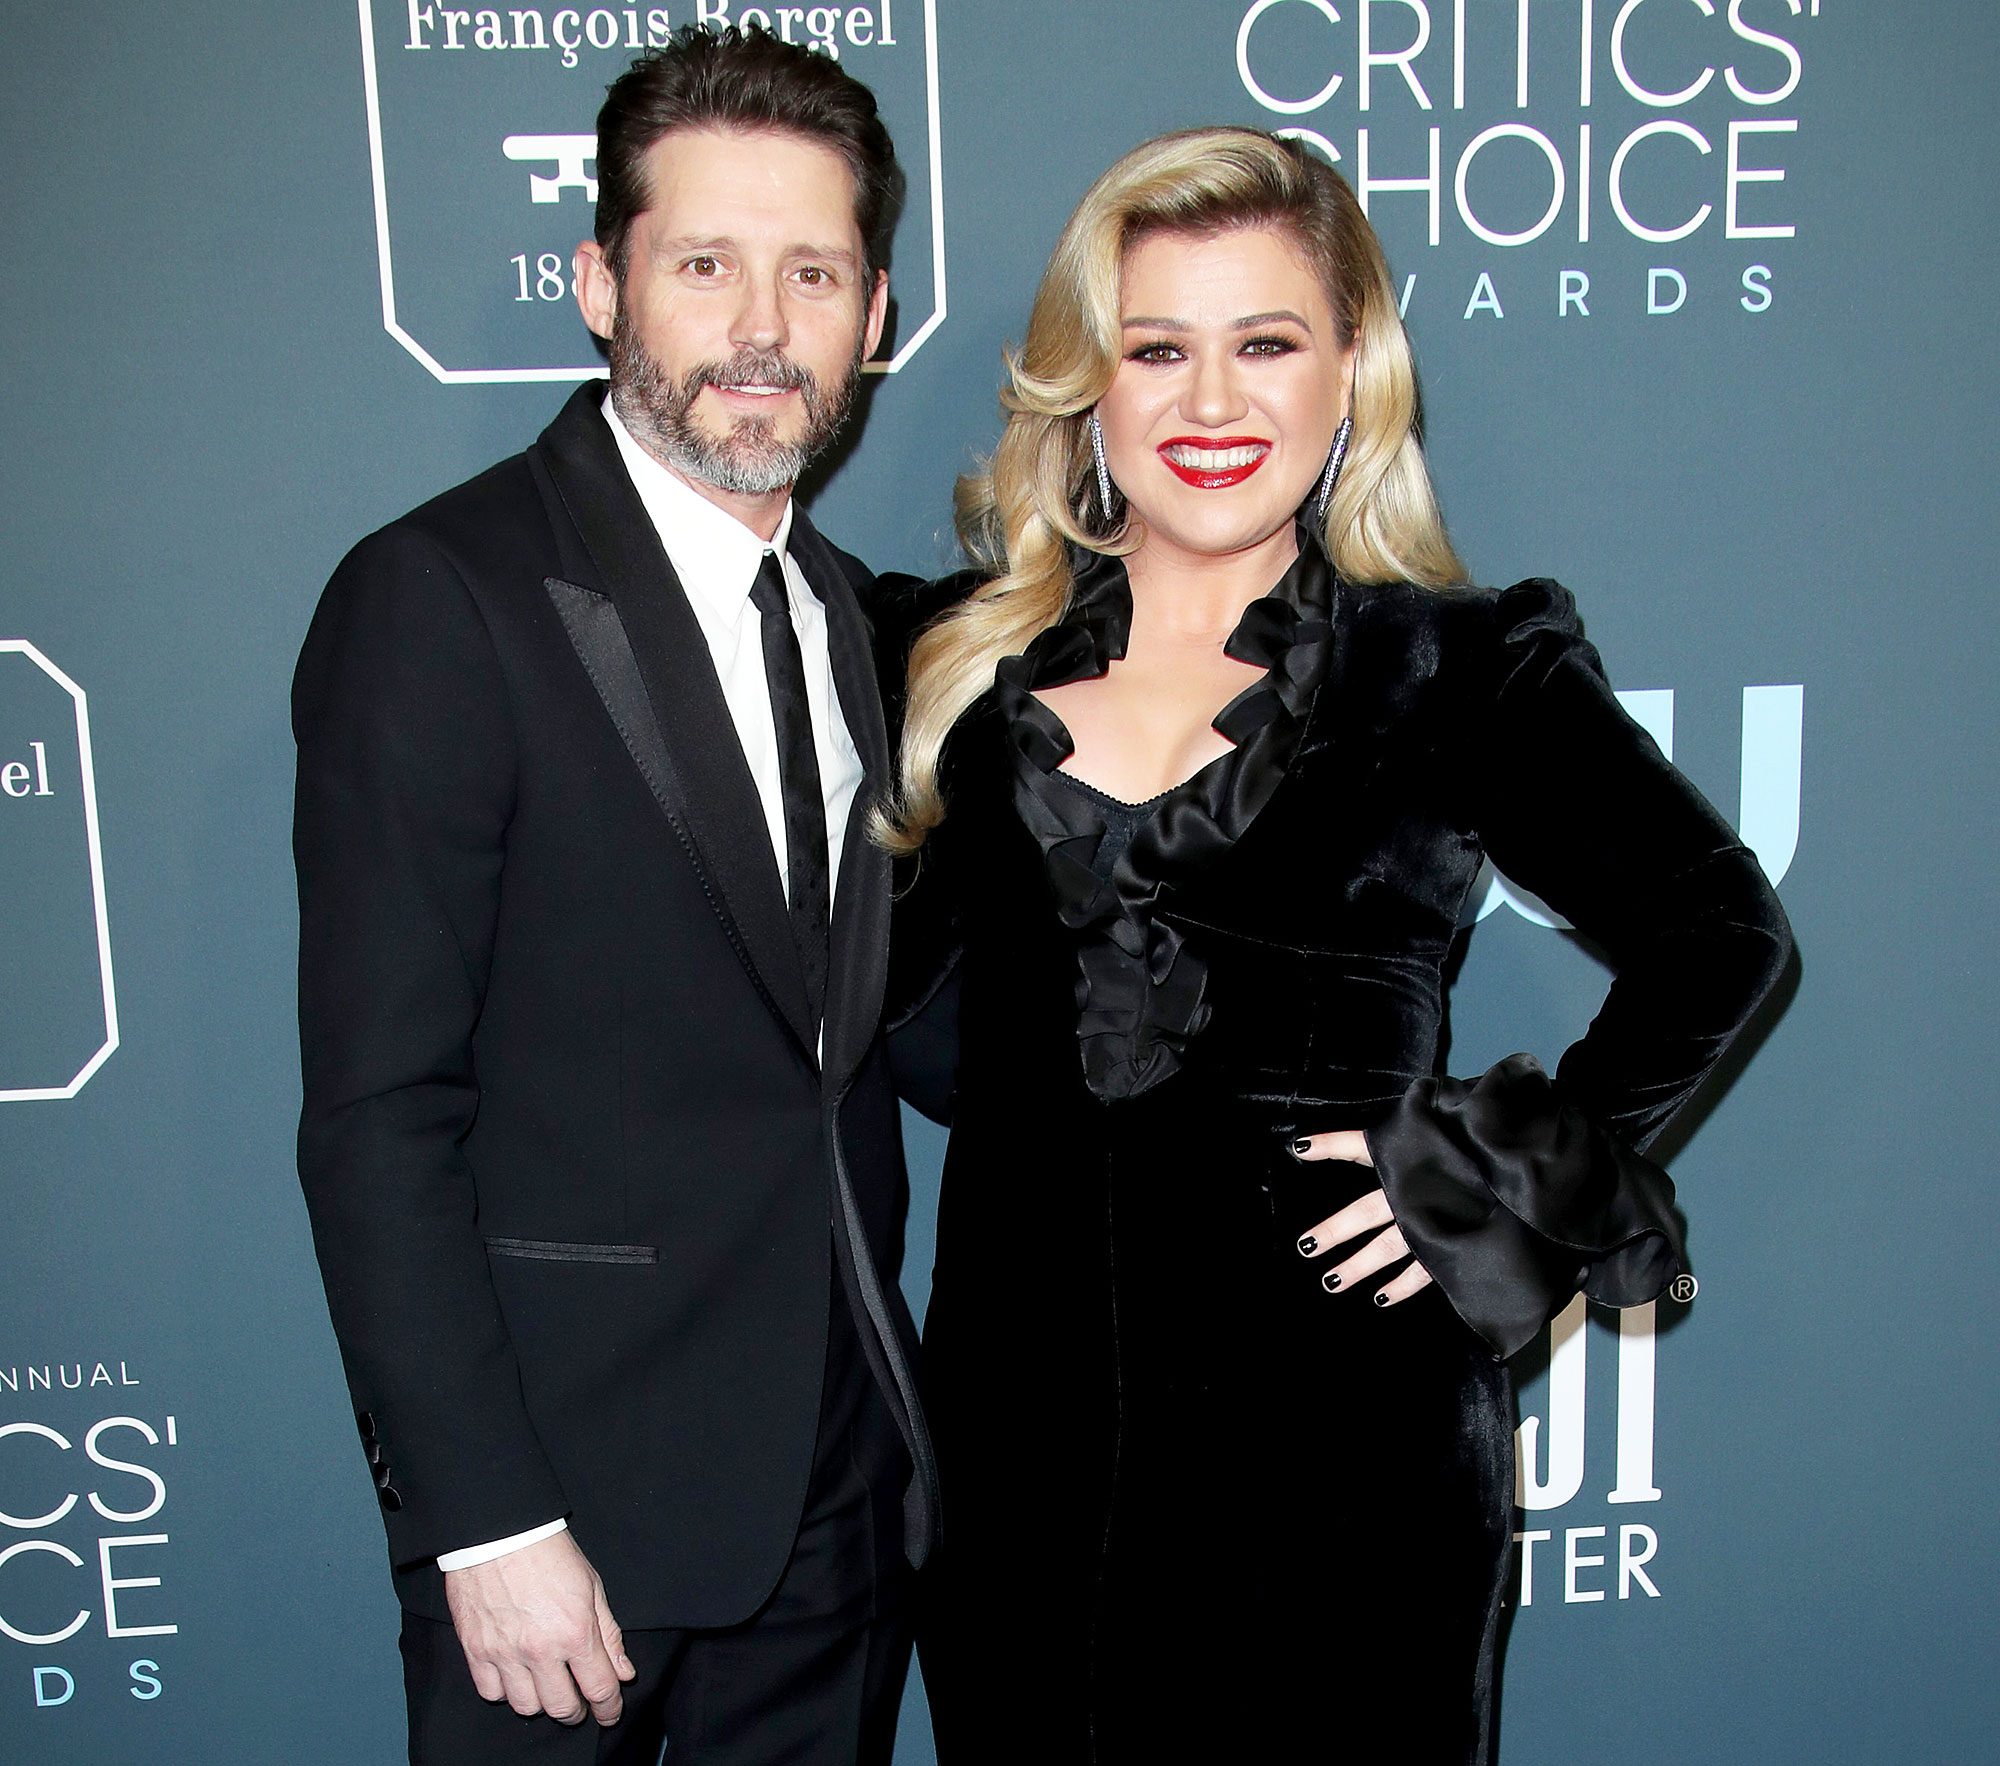 Brandon Blackstock and Kelly Clarkson attend the 25th Annual Critics Choice Awards Kelly Clarkson Claps Back at Troll Who Claims Her Marriage Didnt Work Because She Wants to Be on TV